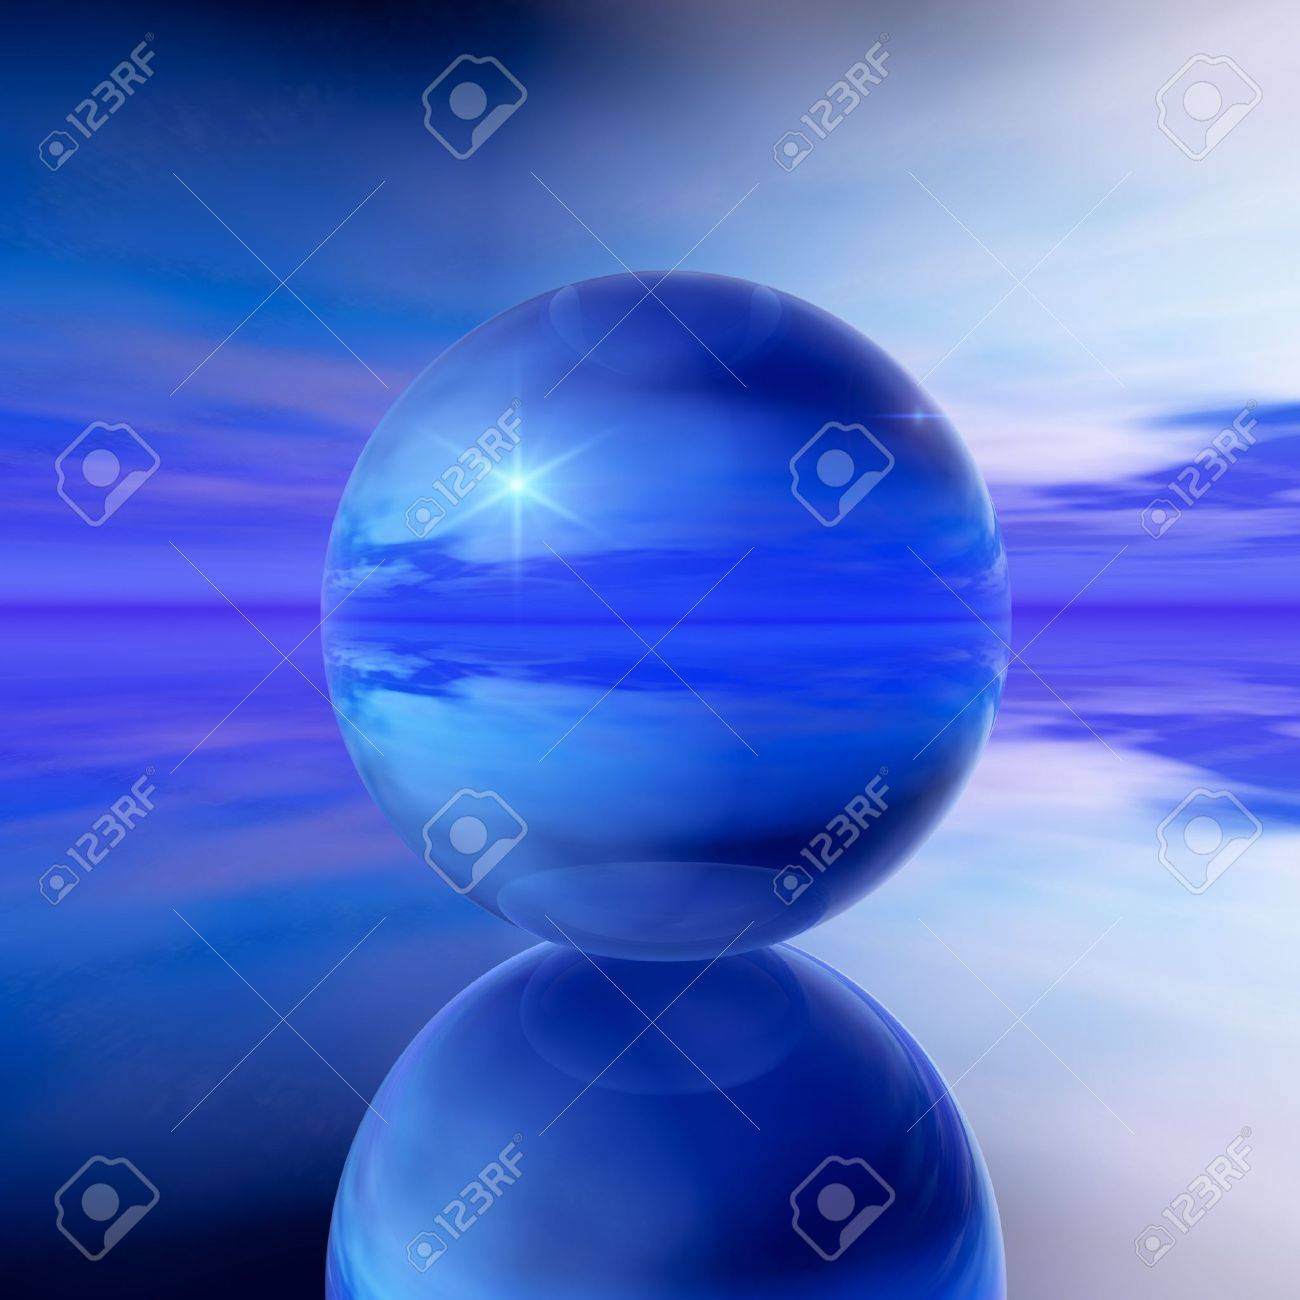 An abstract illustration background of a cool blue crystal ball with a cloudy, unclear prediction of what is to come. Stock Illustration - 6125777